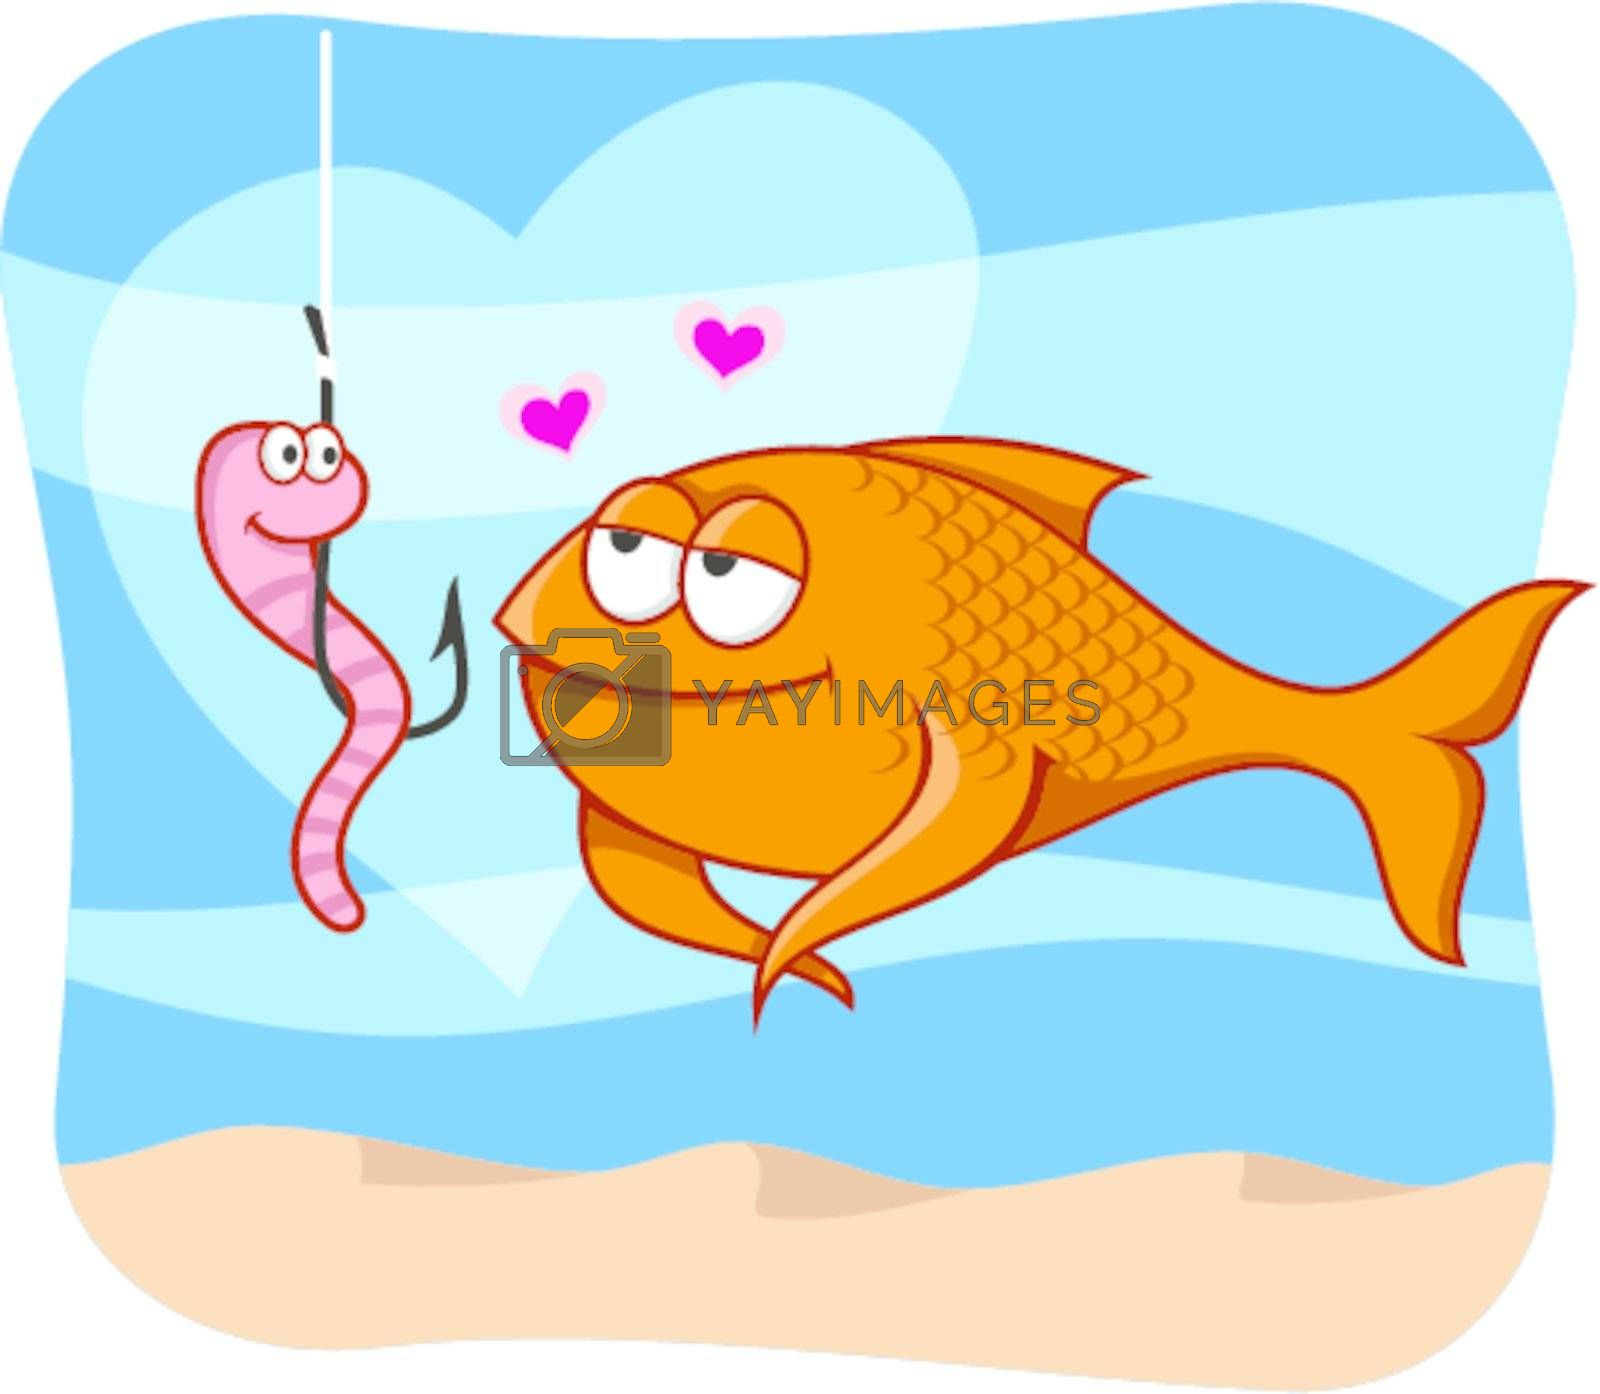 Fish and bait in love by sifis